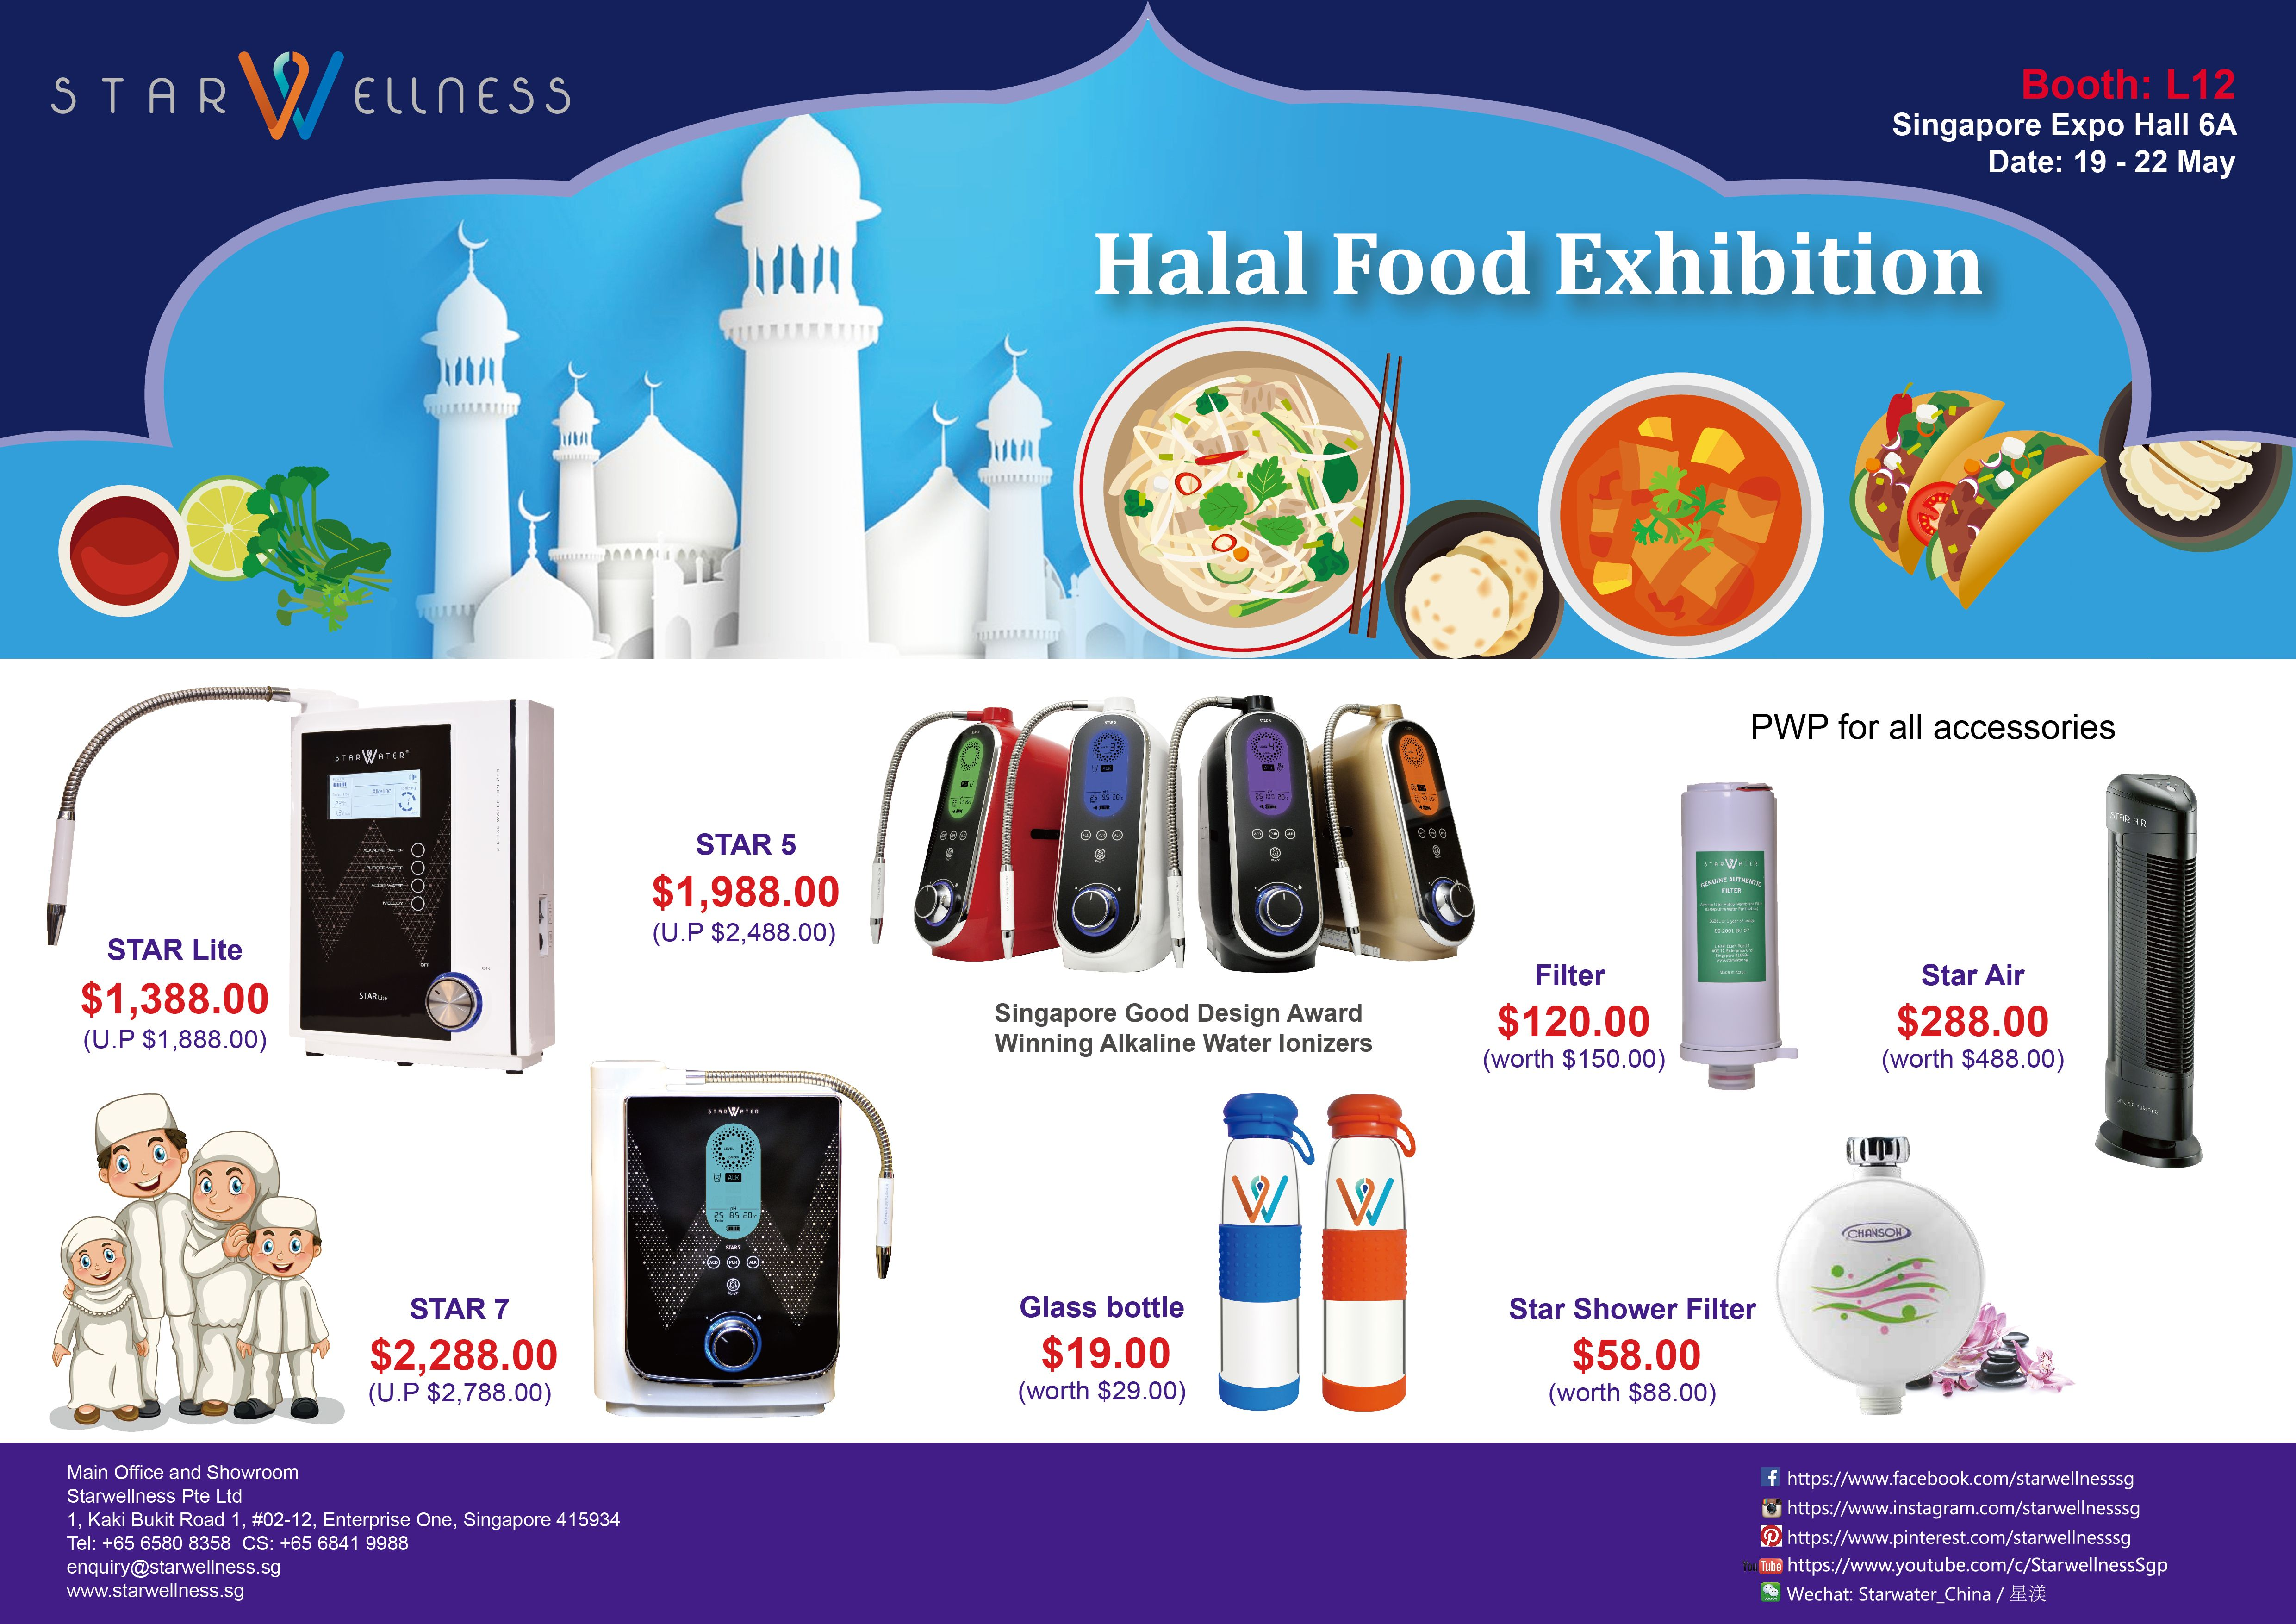 Come And Visit Halal Food Exhibition On May 19 22 2016 And Don T Forget To Drop By At Starwellness Booth Located At B Halal Recipes Betterliving Air Singapore